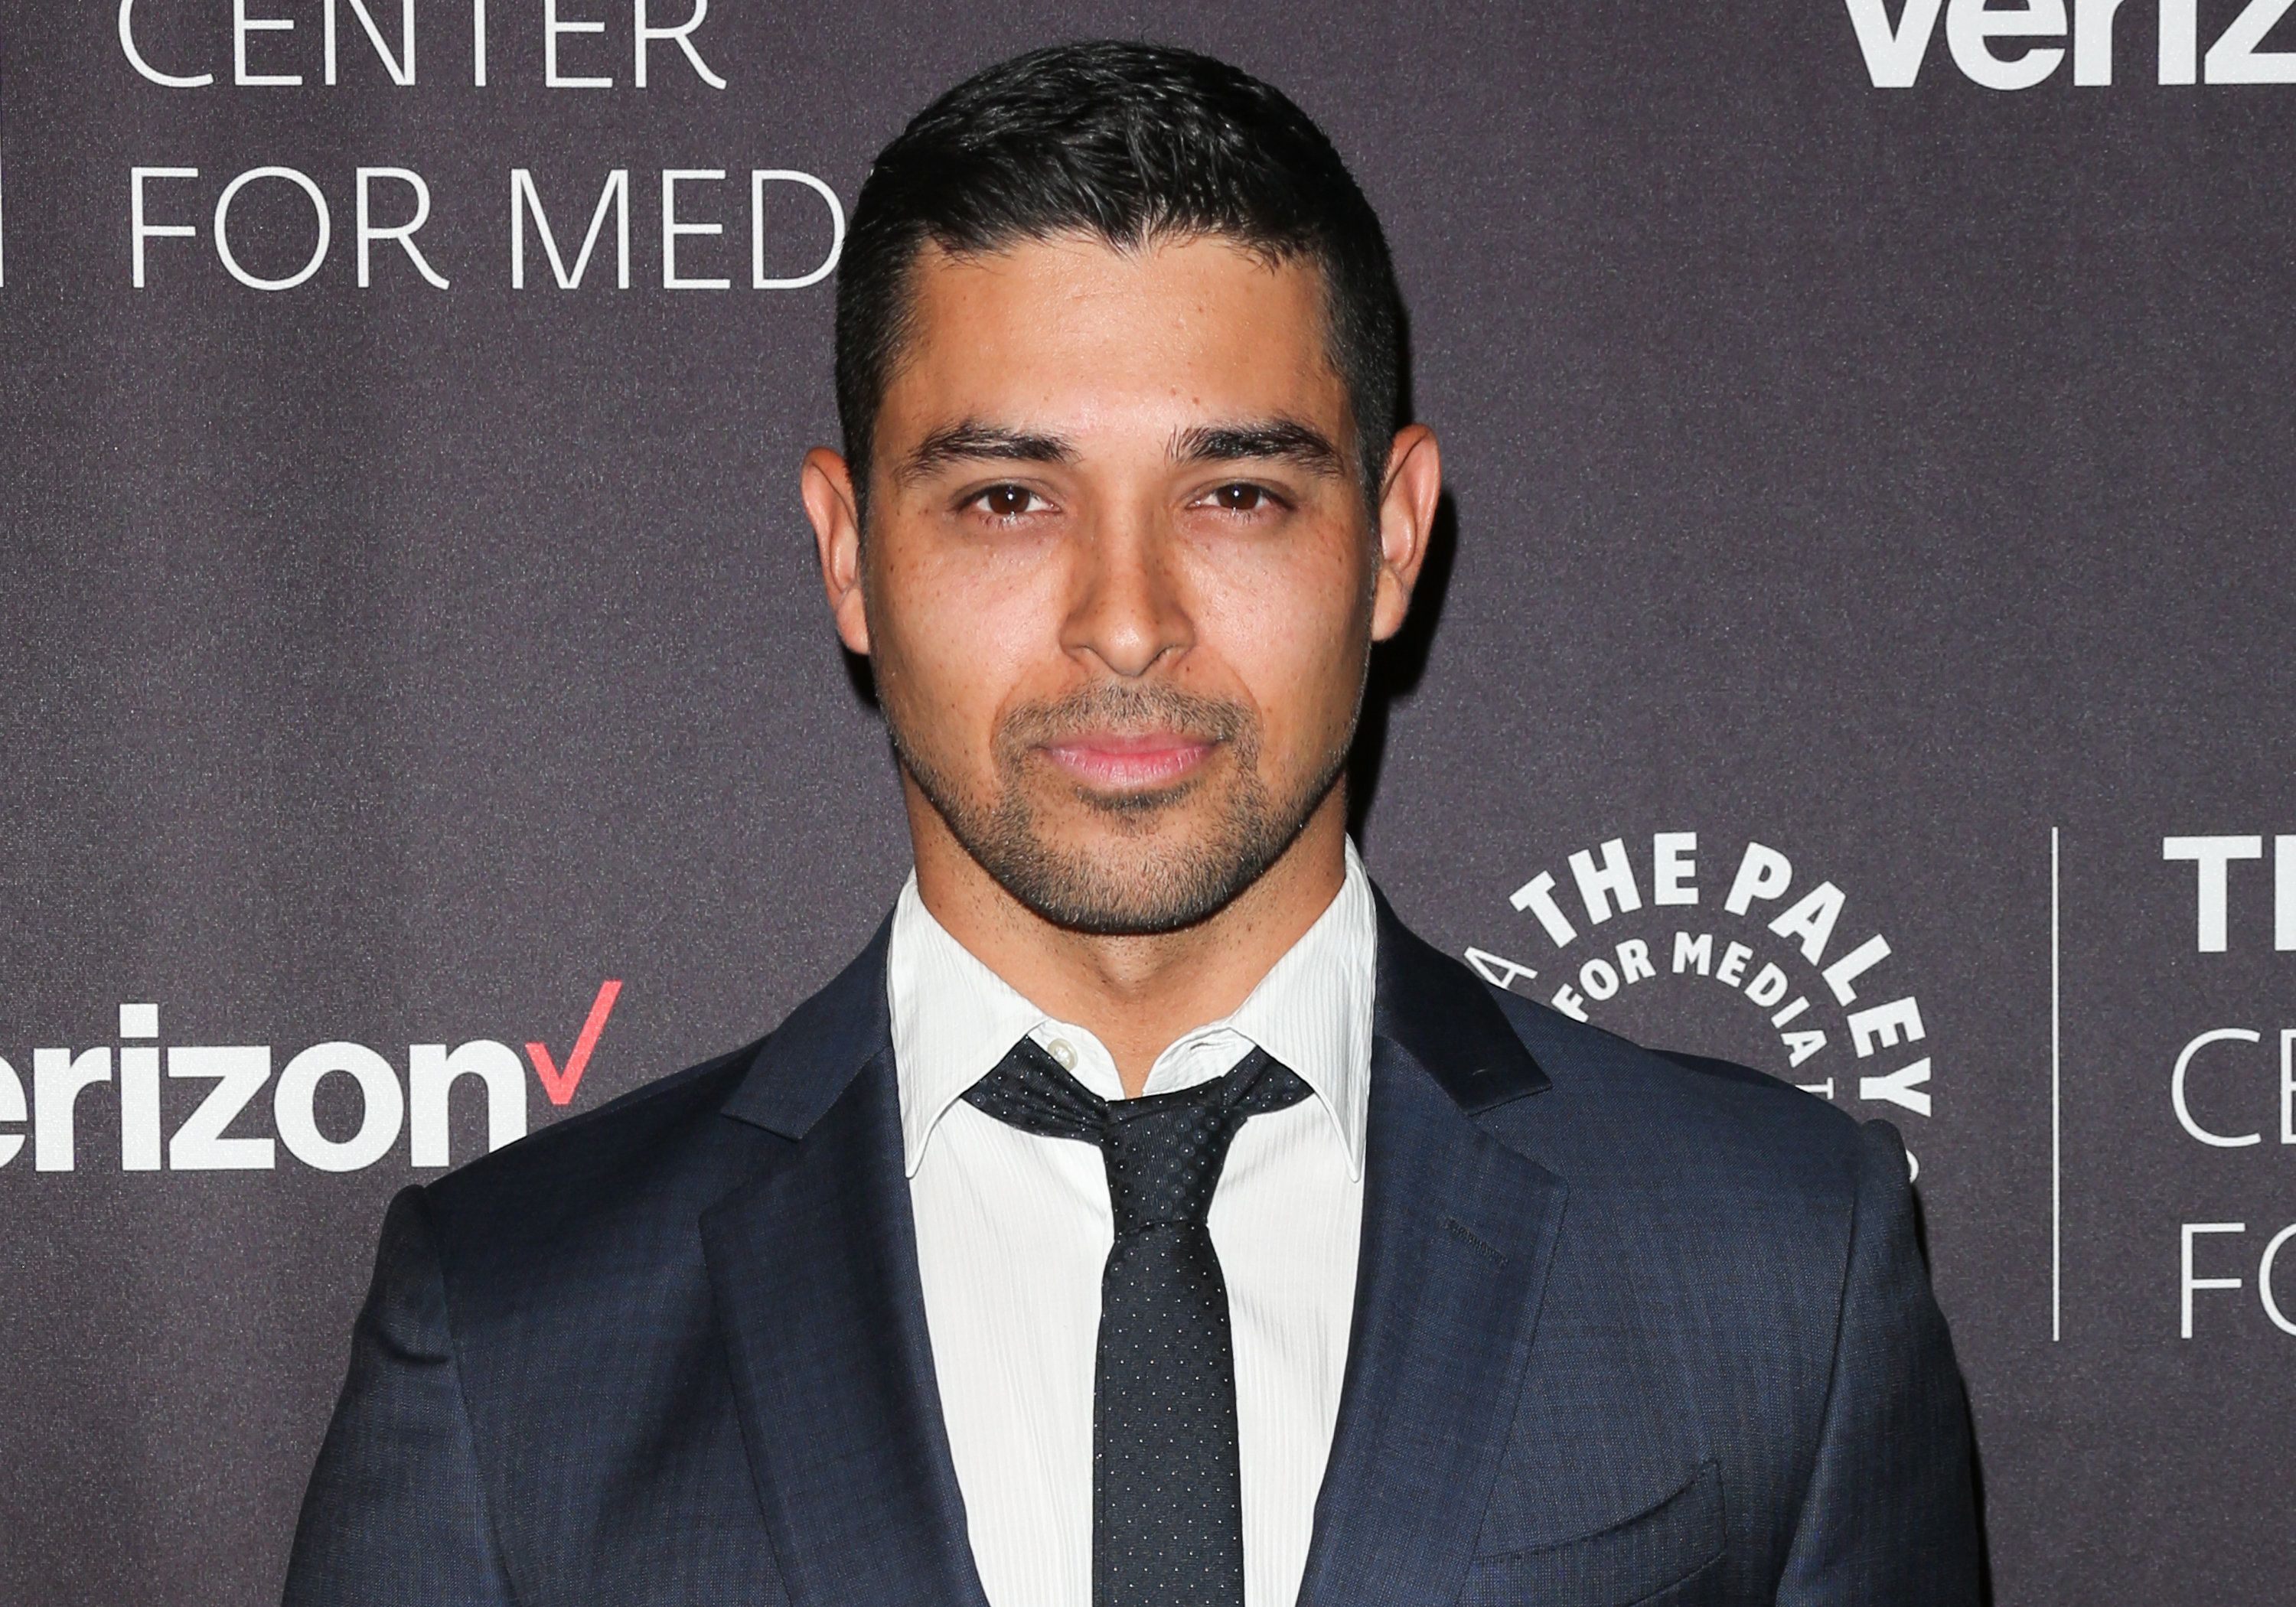 """Wilmer Valderrama works closely with<a href=""""http://votolatino.org/about-us/"""" target=""""_blank"""">Voto Latino</a>, an"""